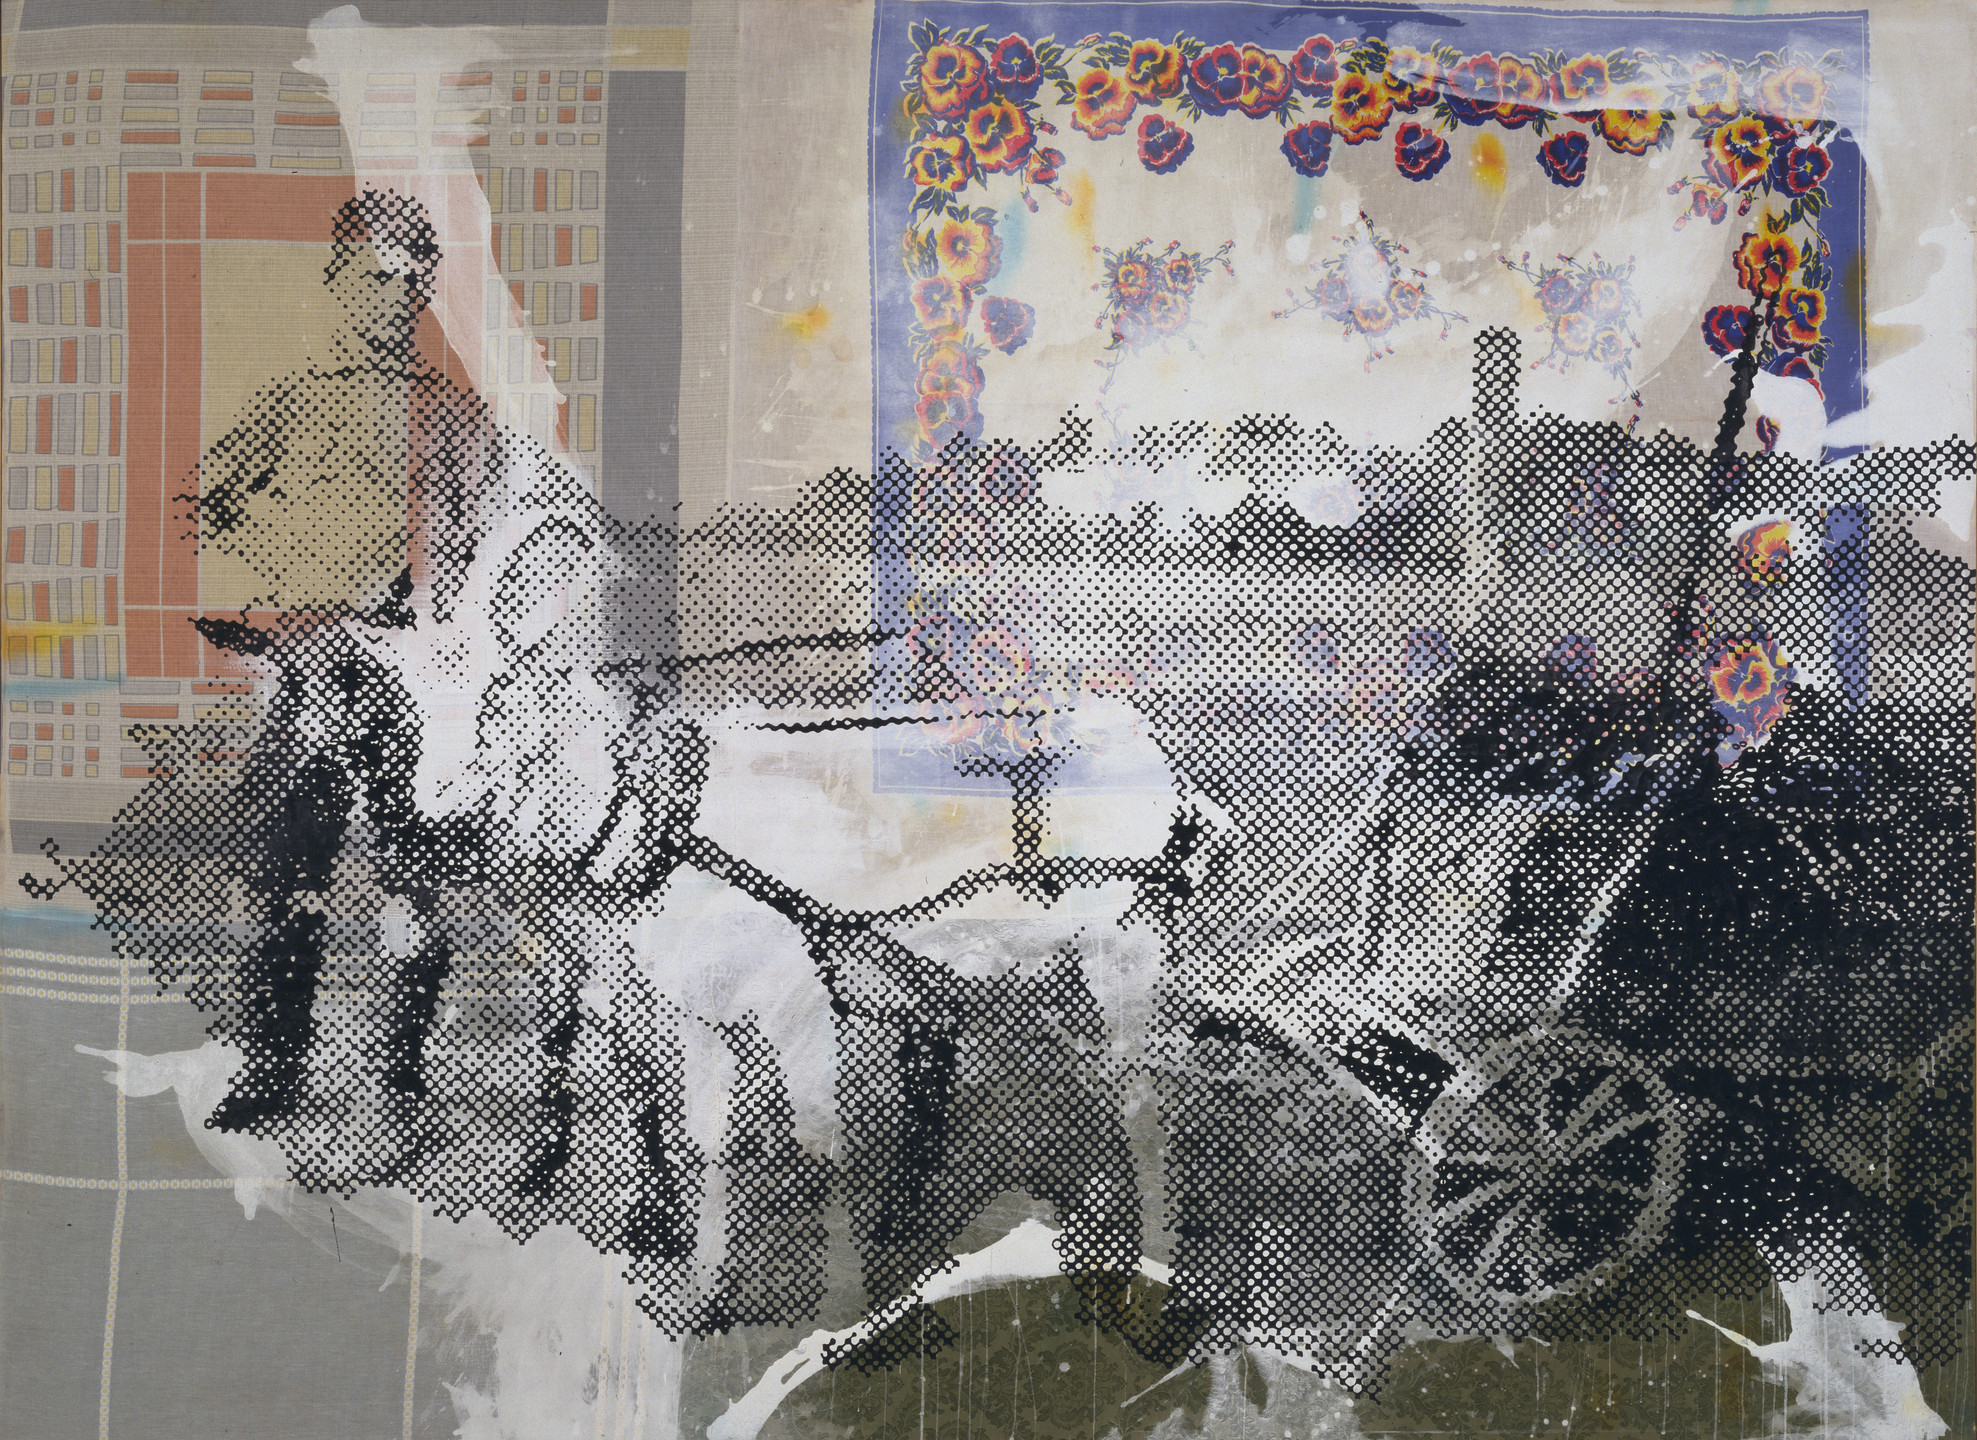 Sigmar Polke. The Goat Wagon. 1992